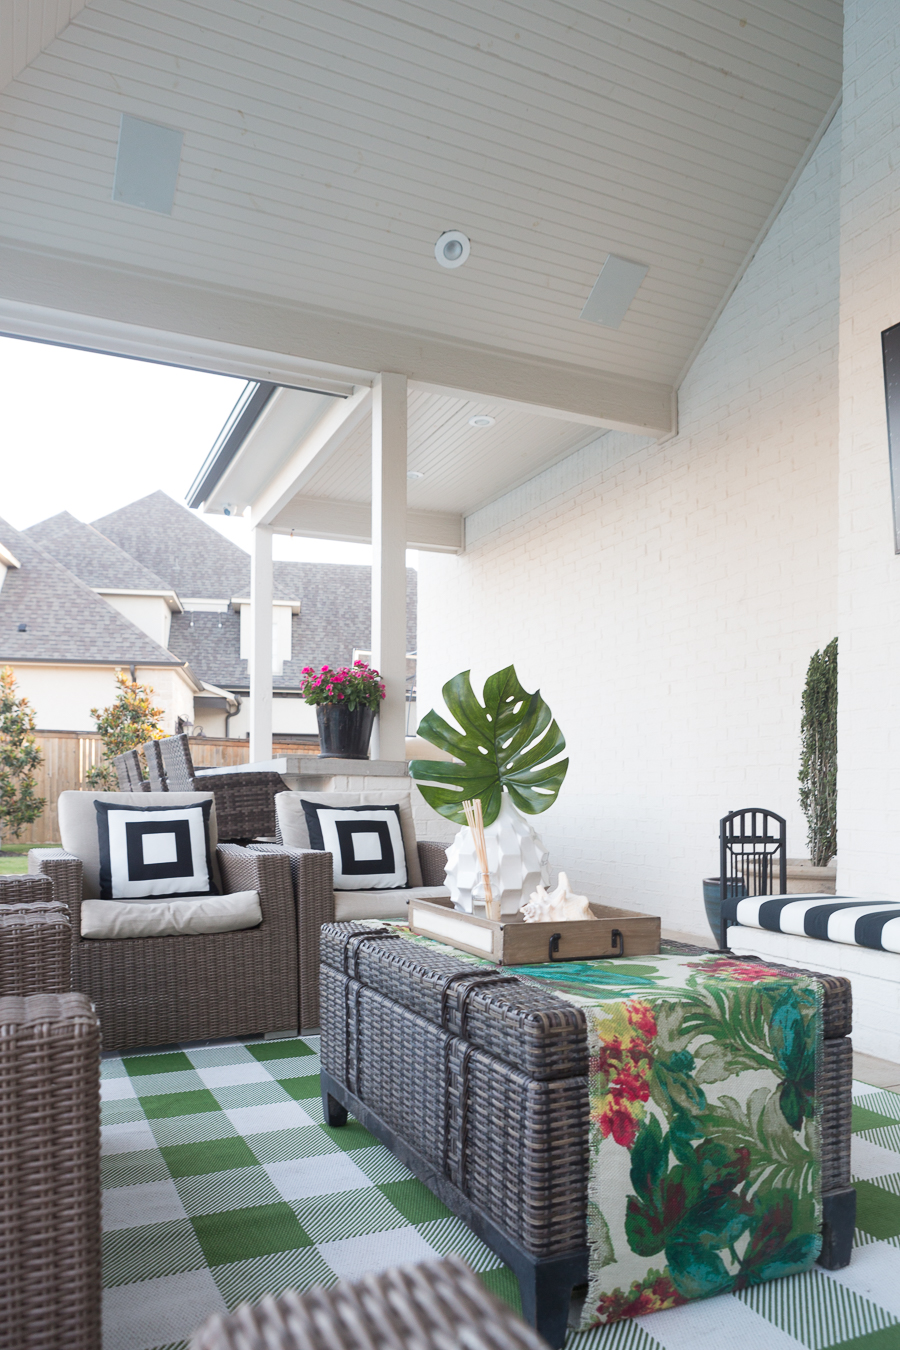 How to Design a Beautiful Pool and Outdoor Living Area ... on Cc Outdoor Living id=77413